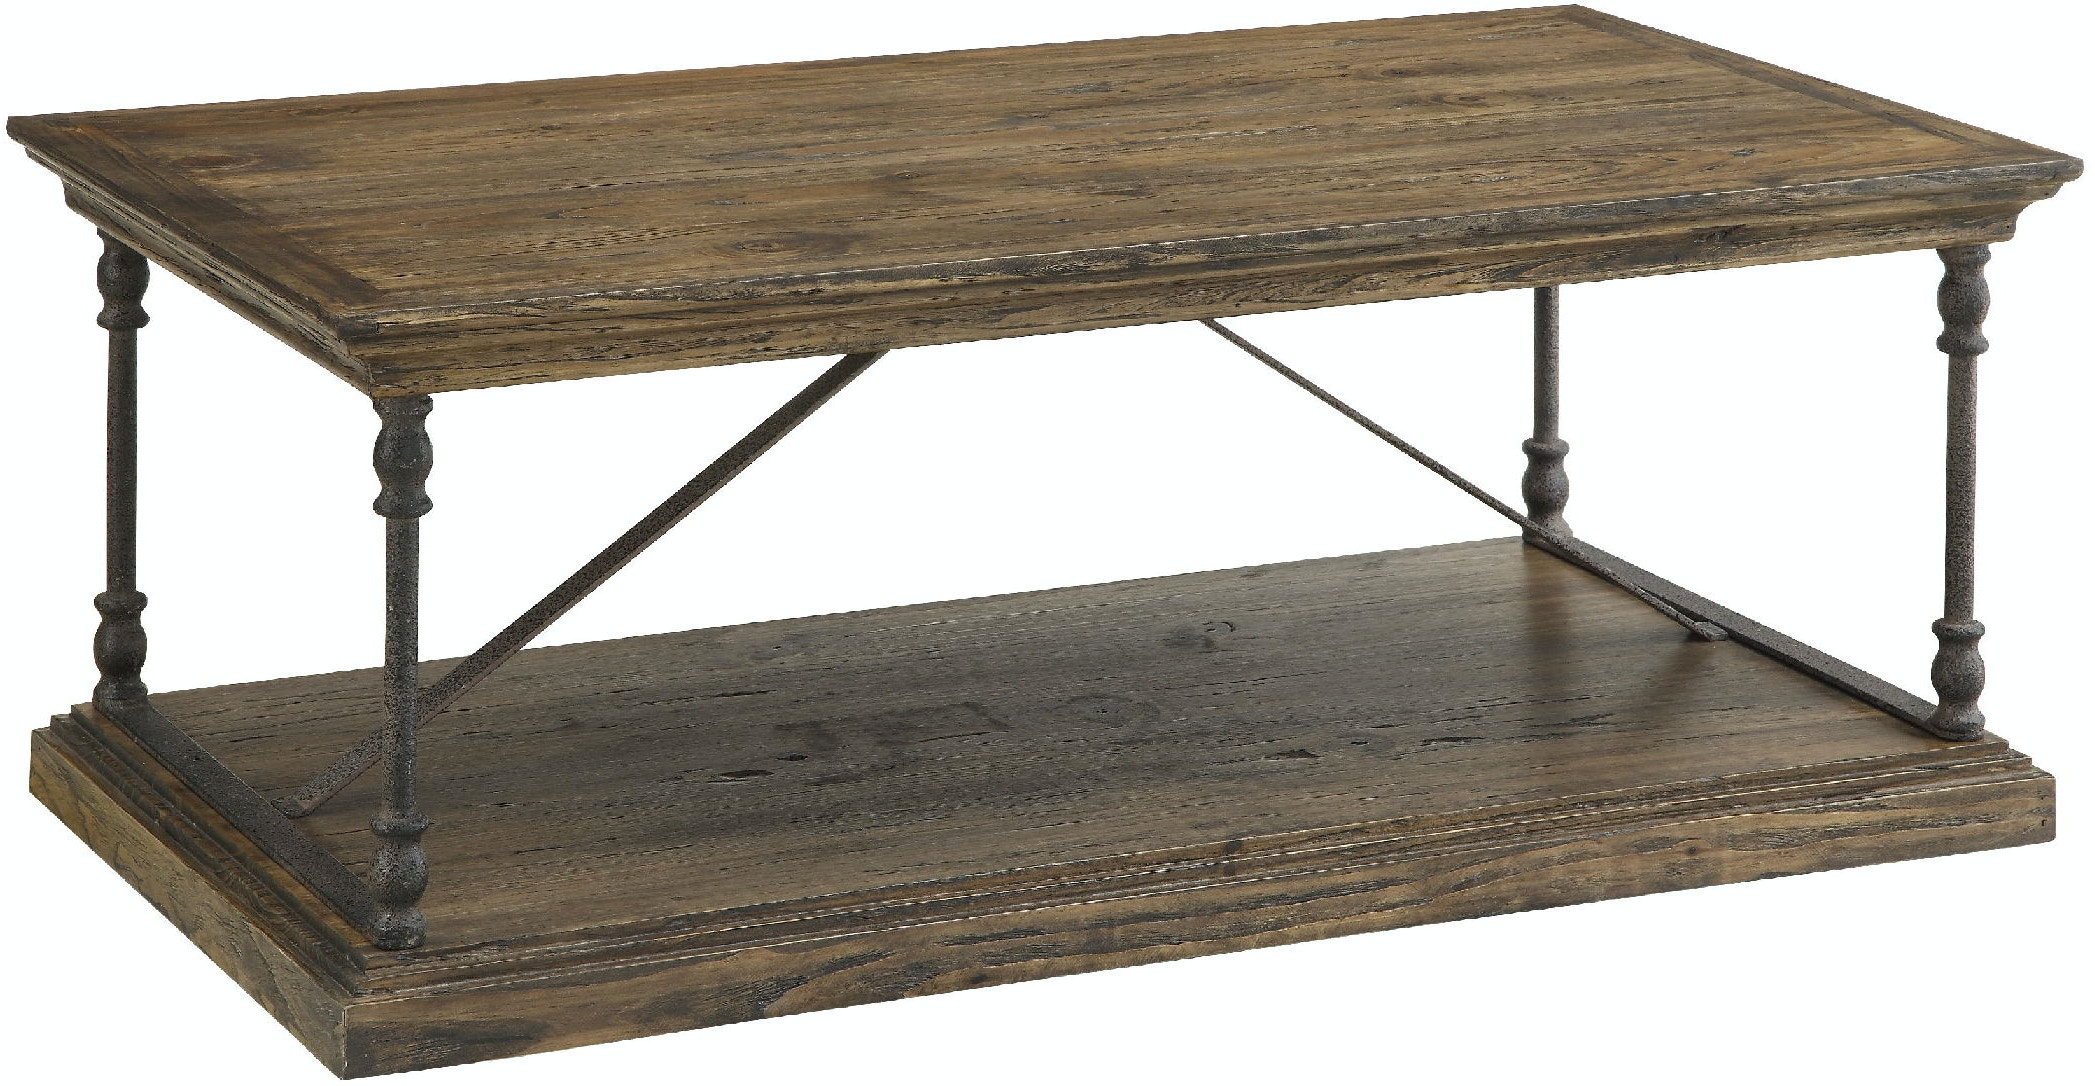 Coast to Coast Accents Living Room Cocktail Table : 61621 1  from www.bobmillsfurniture.com size 1024 x 768 jpeg 57kB